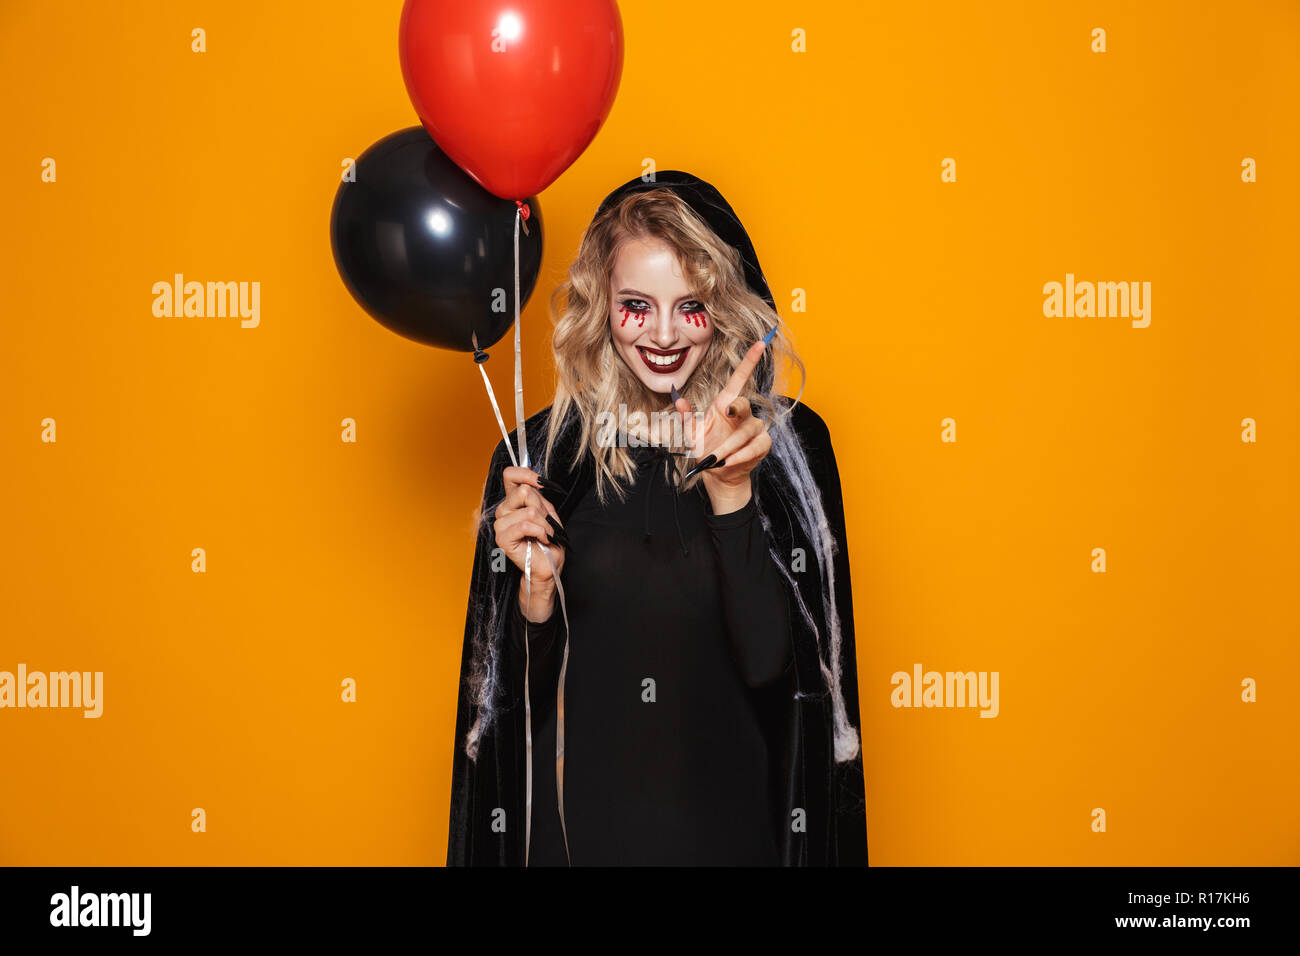 Tricky scary witch in black clothes looking camera with red and black air balloons isolated - Stock Image